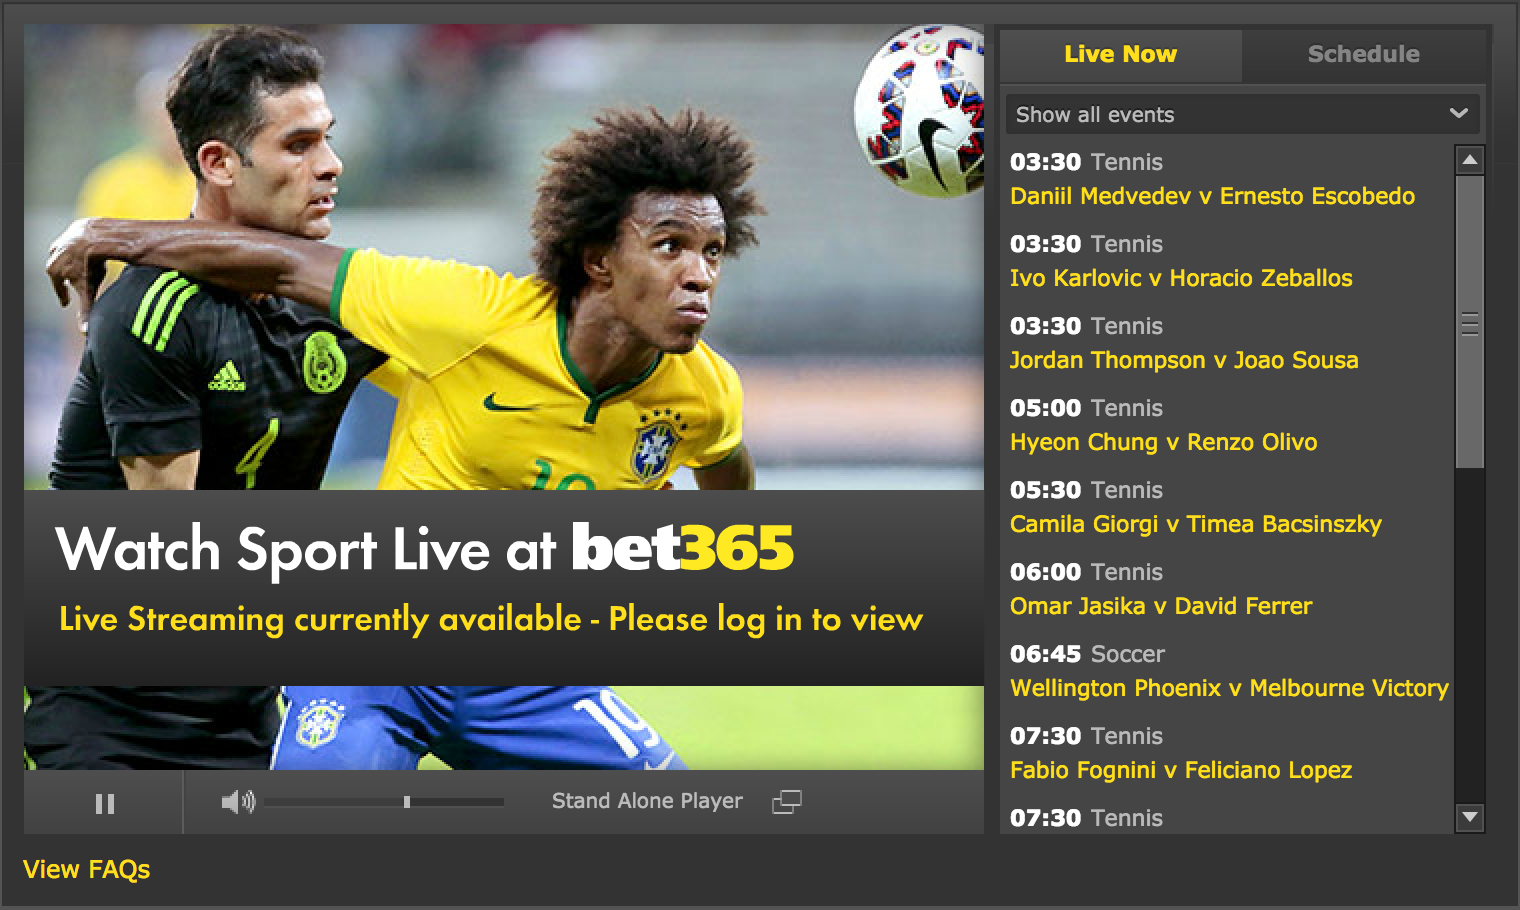 Watch Australian Open Live at Bet365